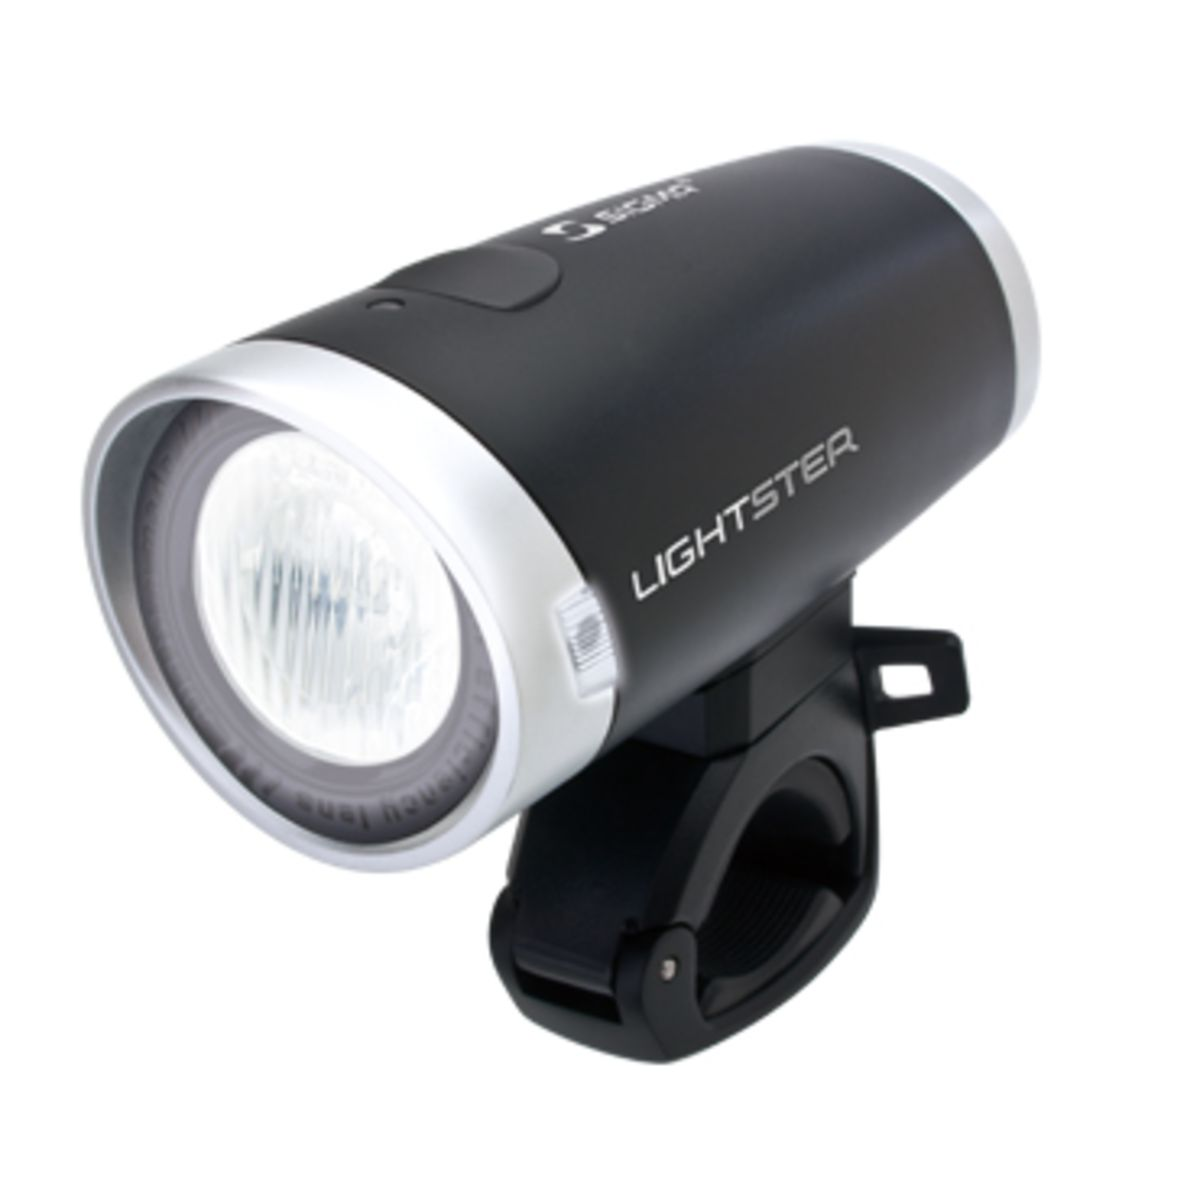 Lightster LED-Frontleuchte